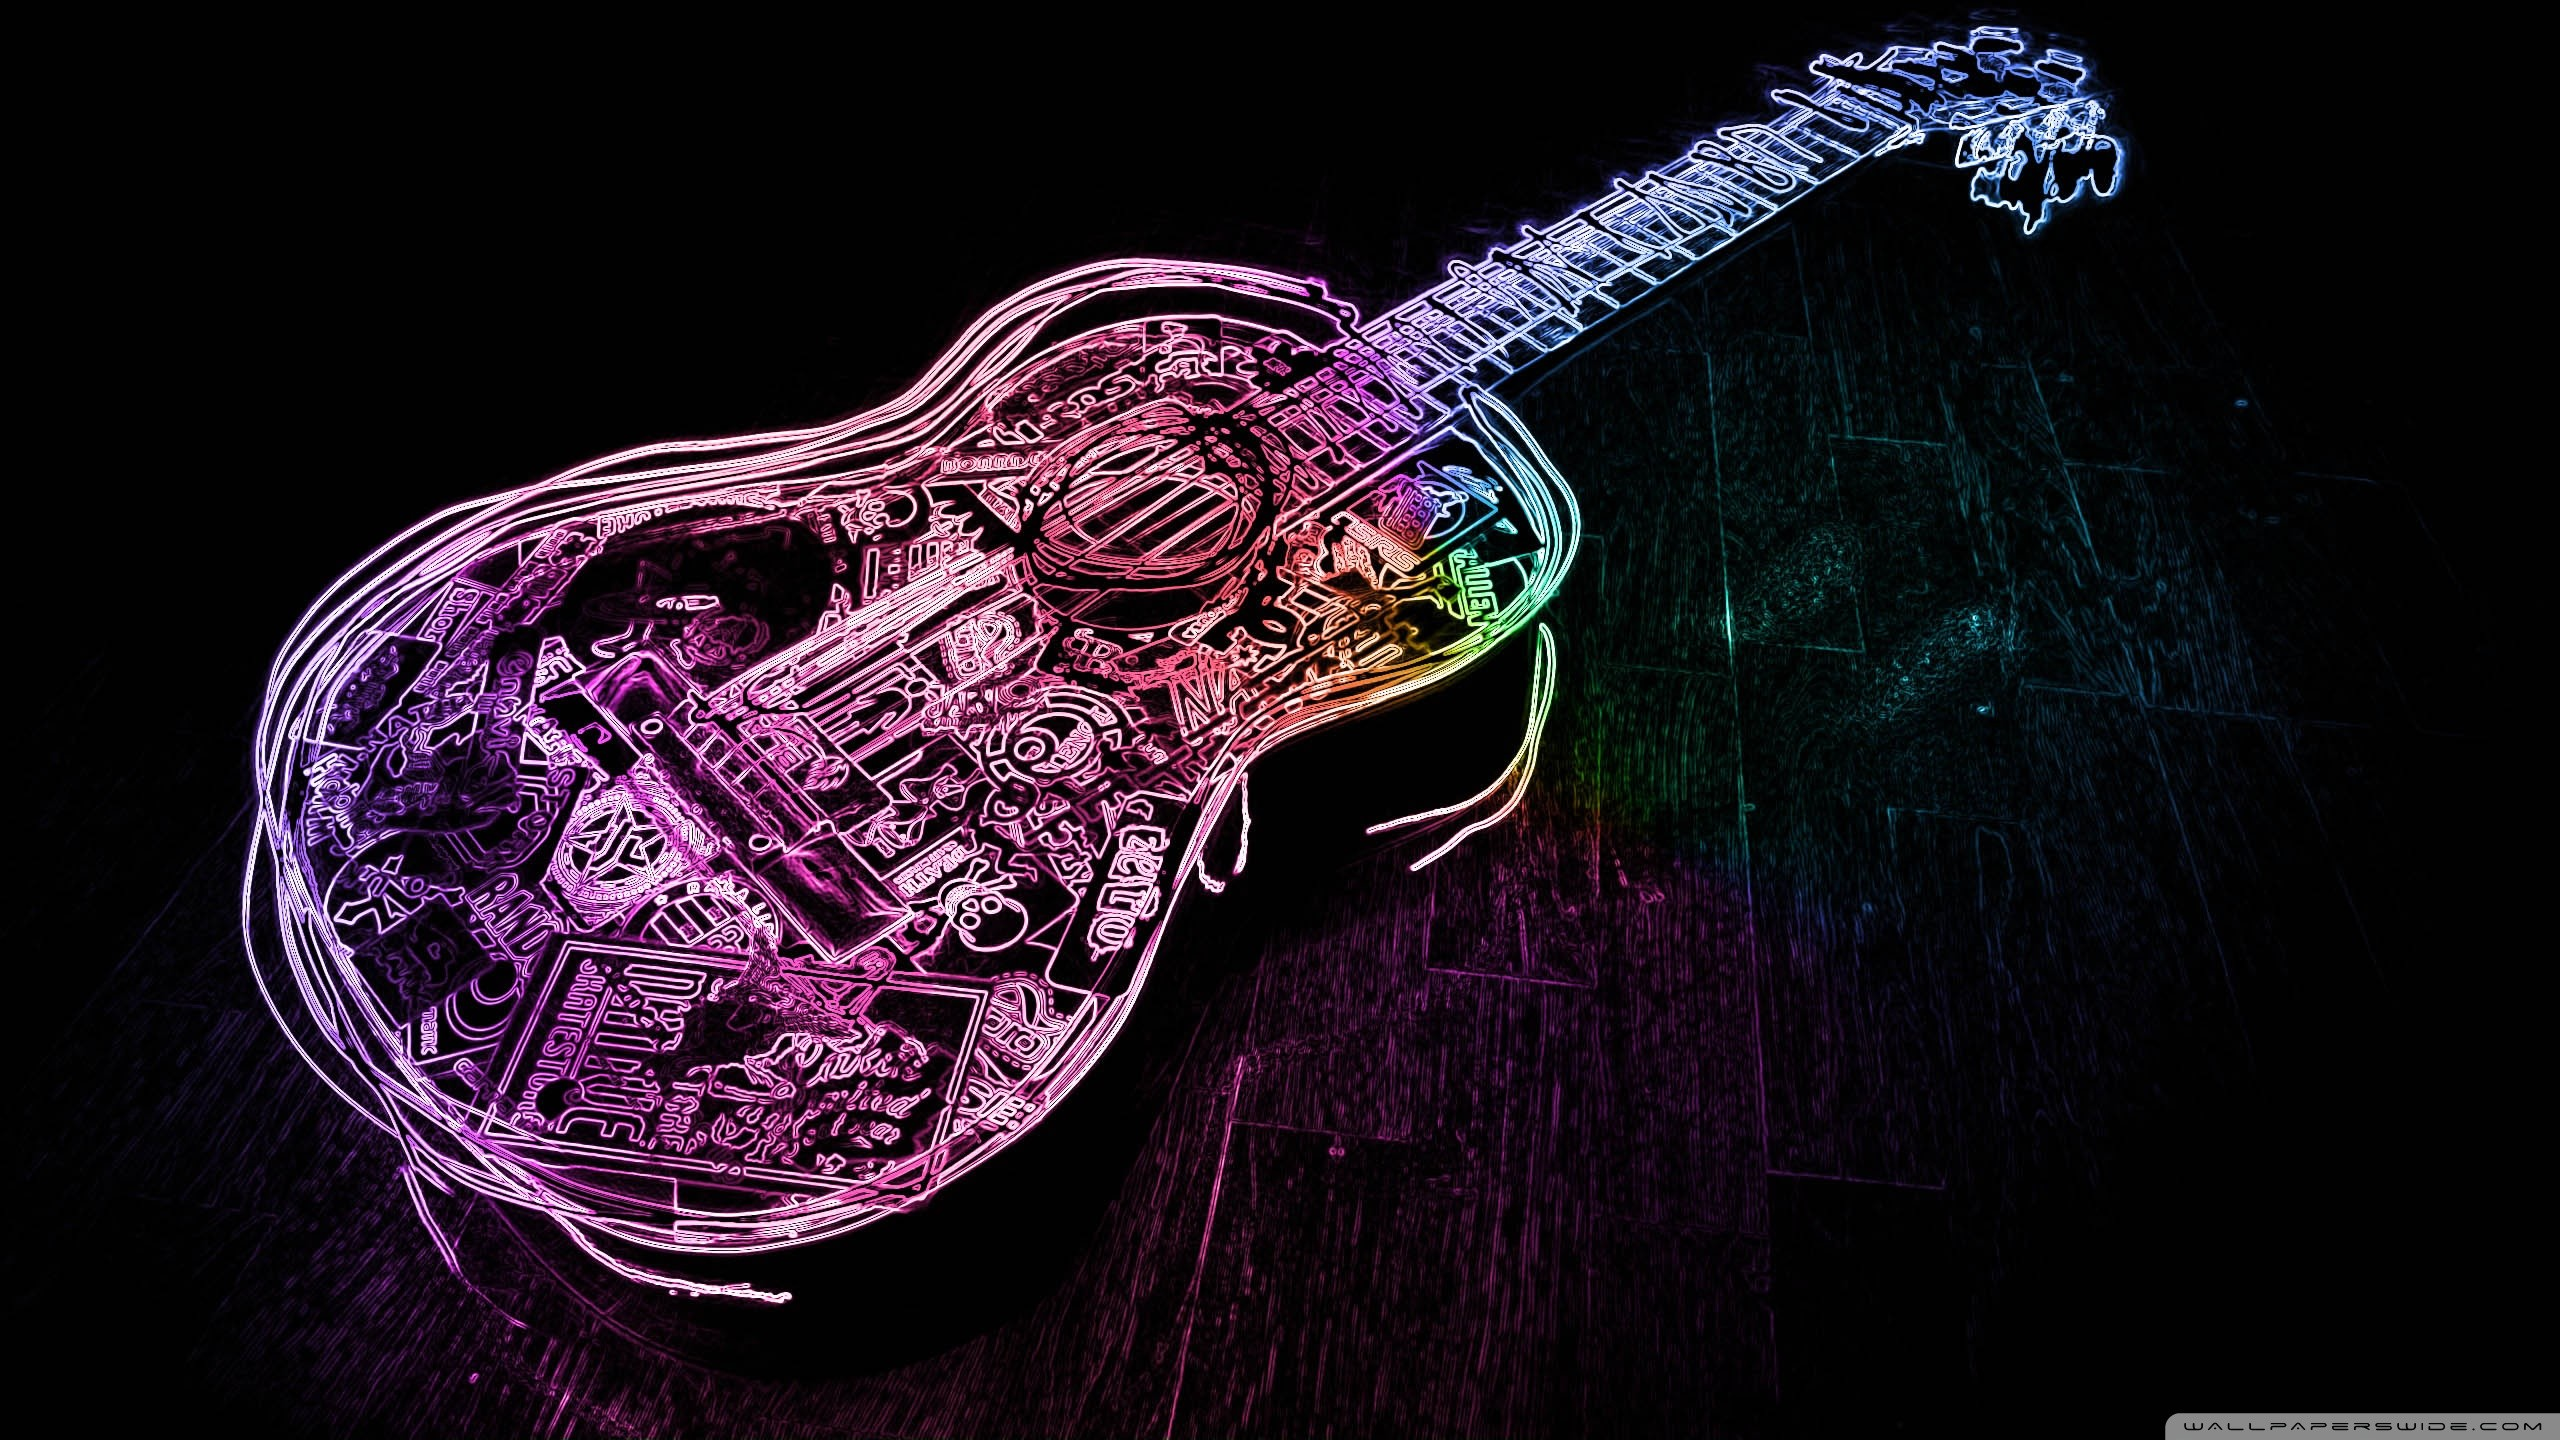 1920x1080 Full HD 1080p Music Wallpapers Desktop Backgrounds Pictures